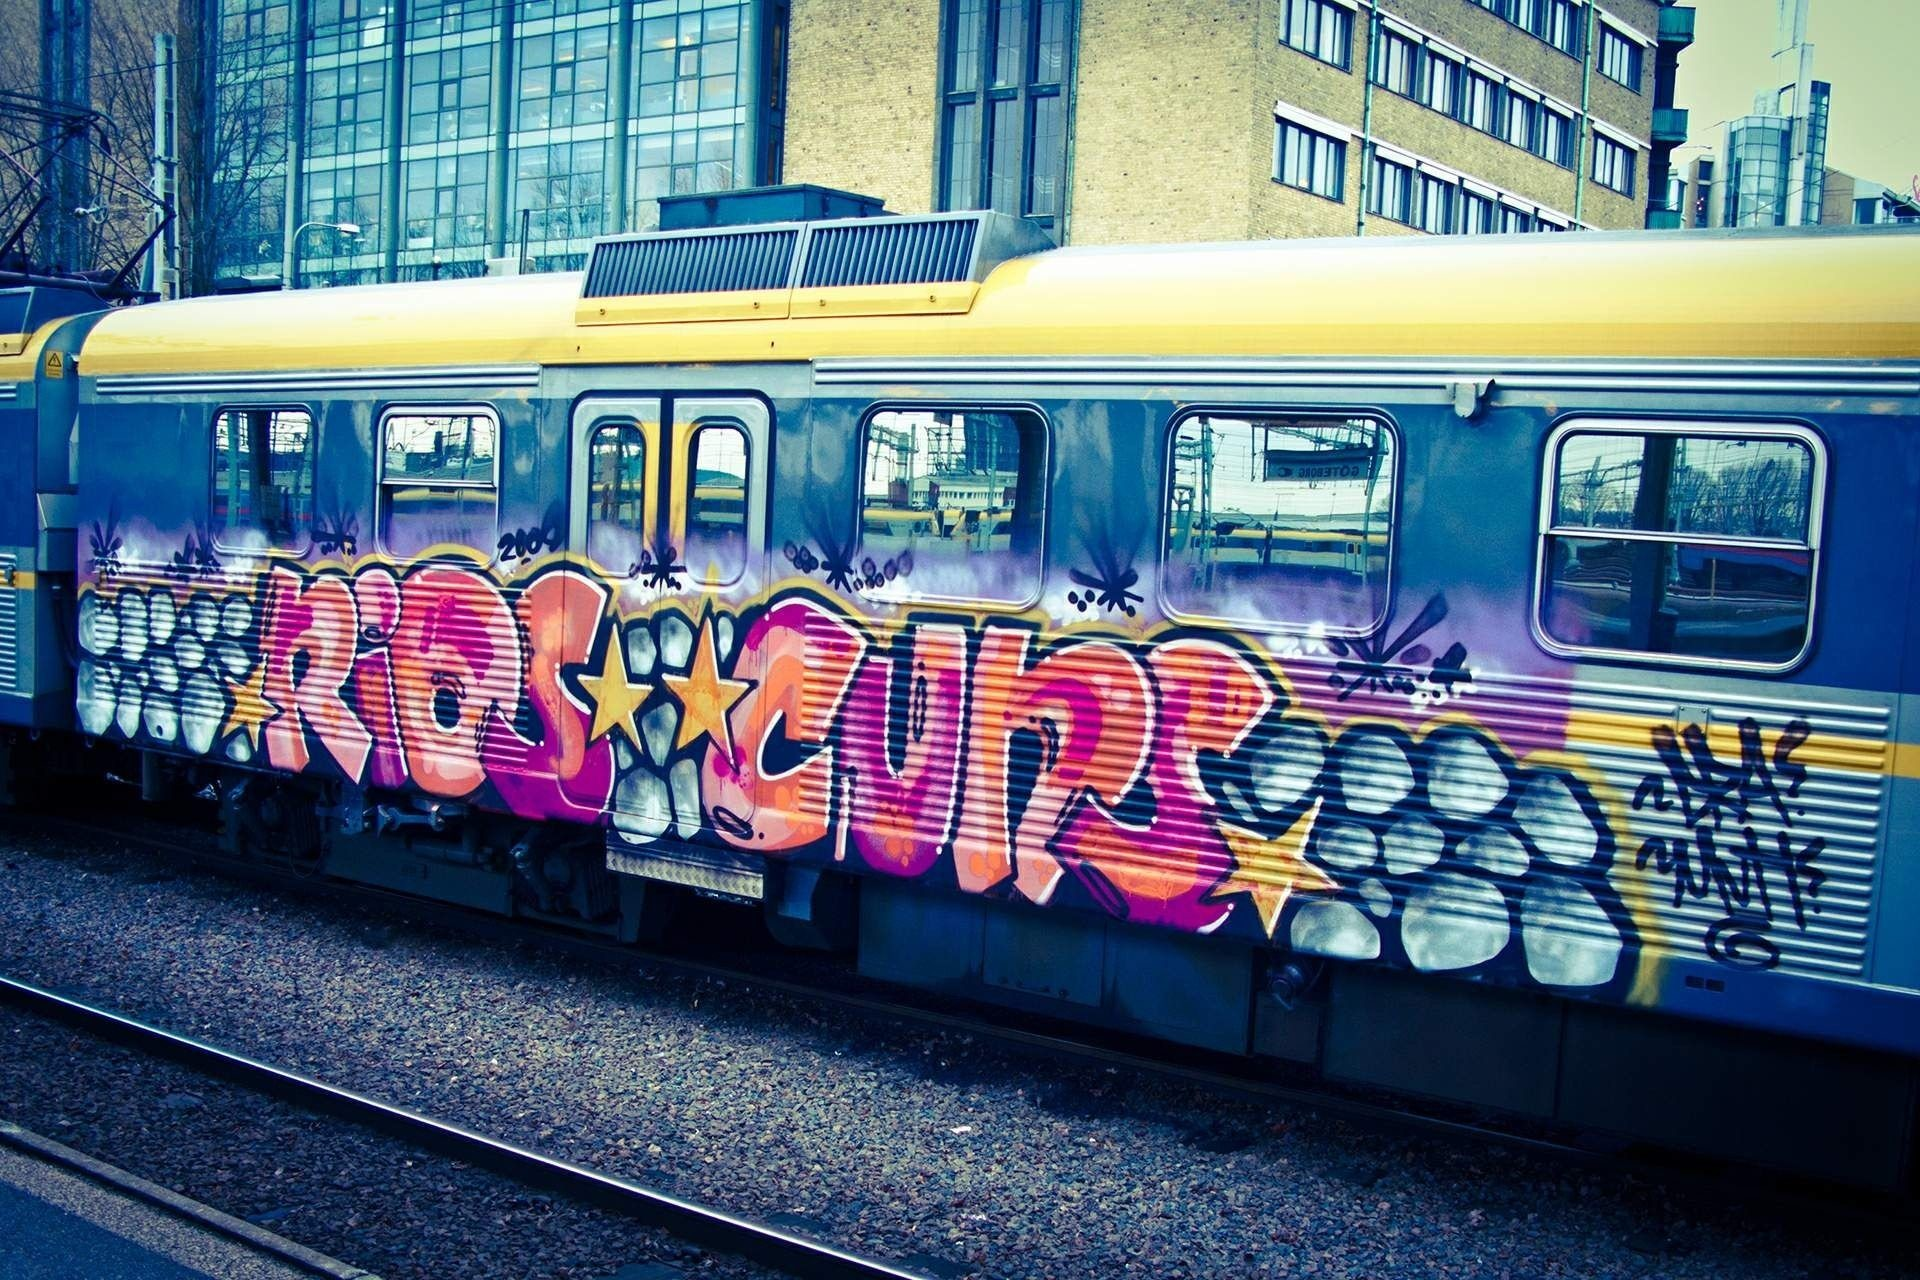 1920x1280 graffiti hd wallpaper the train street art cool images download amazing  artwork background wallpapers desktop wallpapers mac desktop images samsung  phone ...